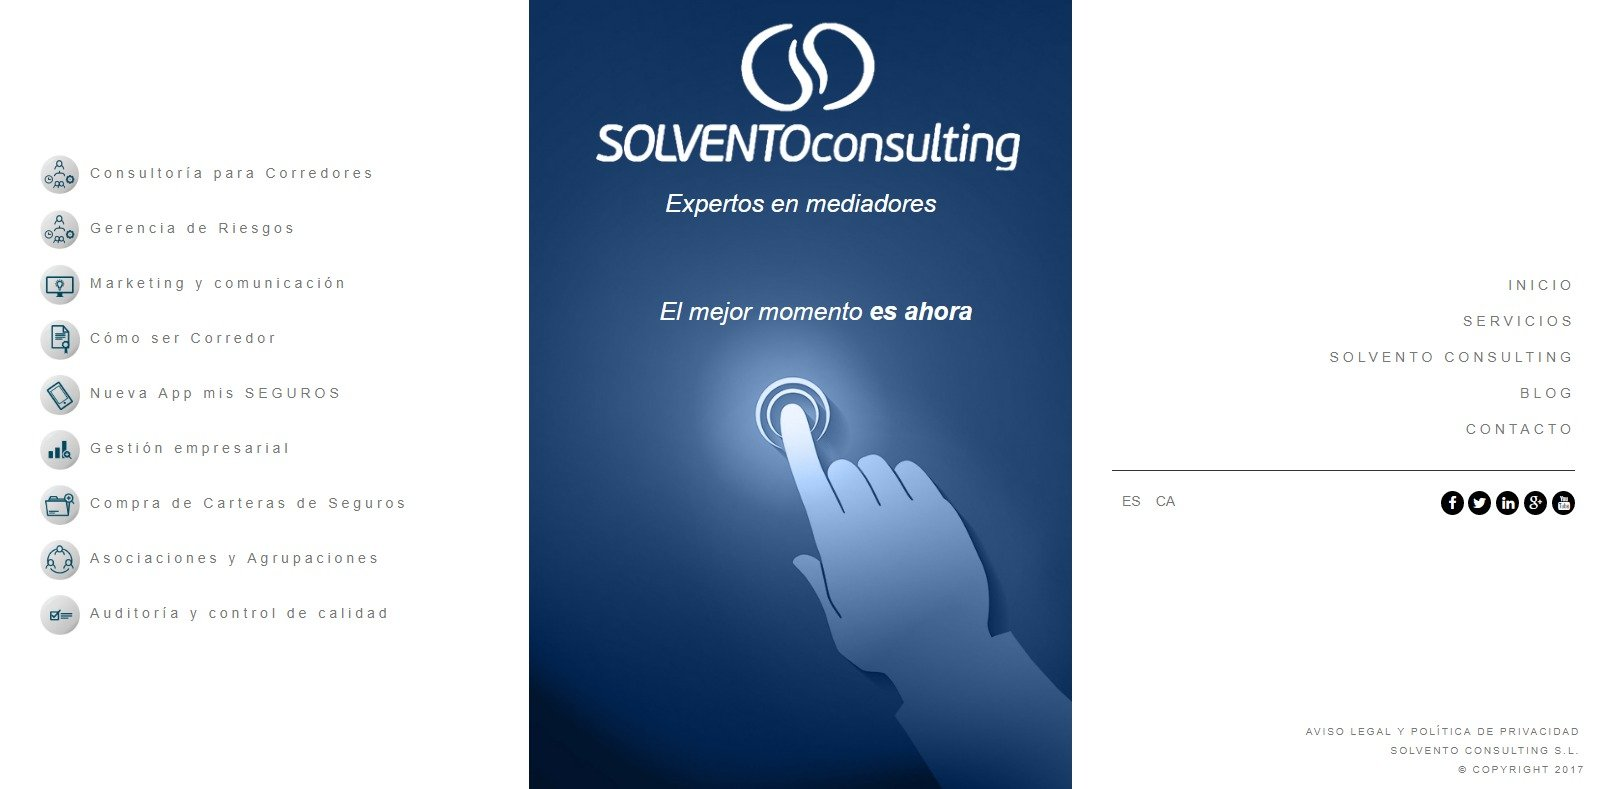 Solvento Consulting